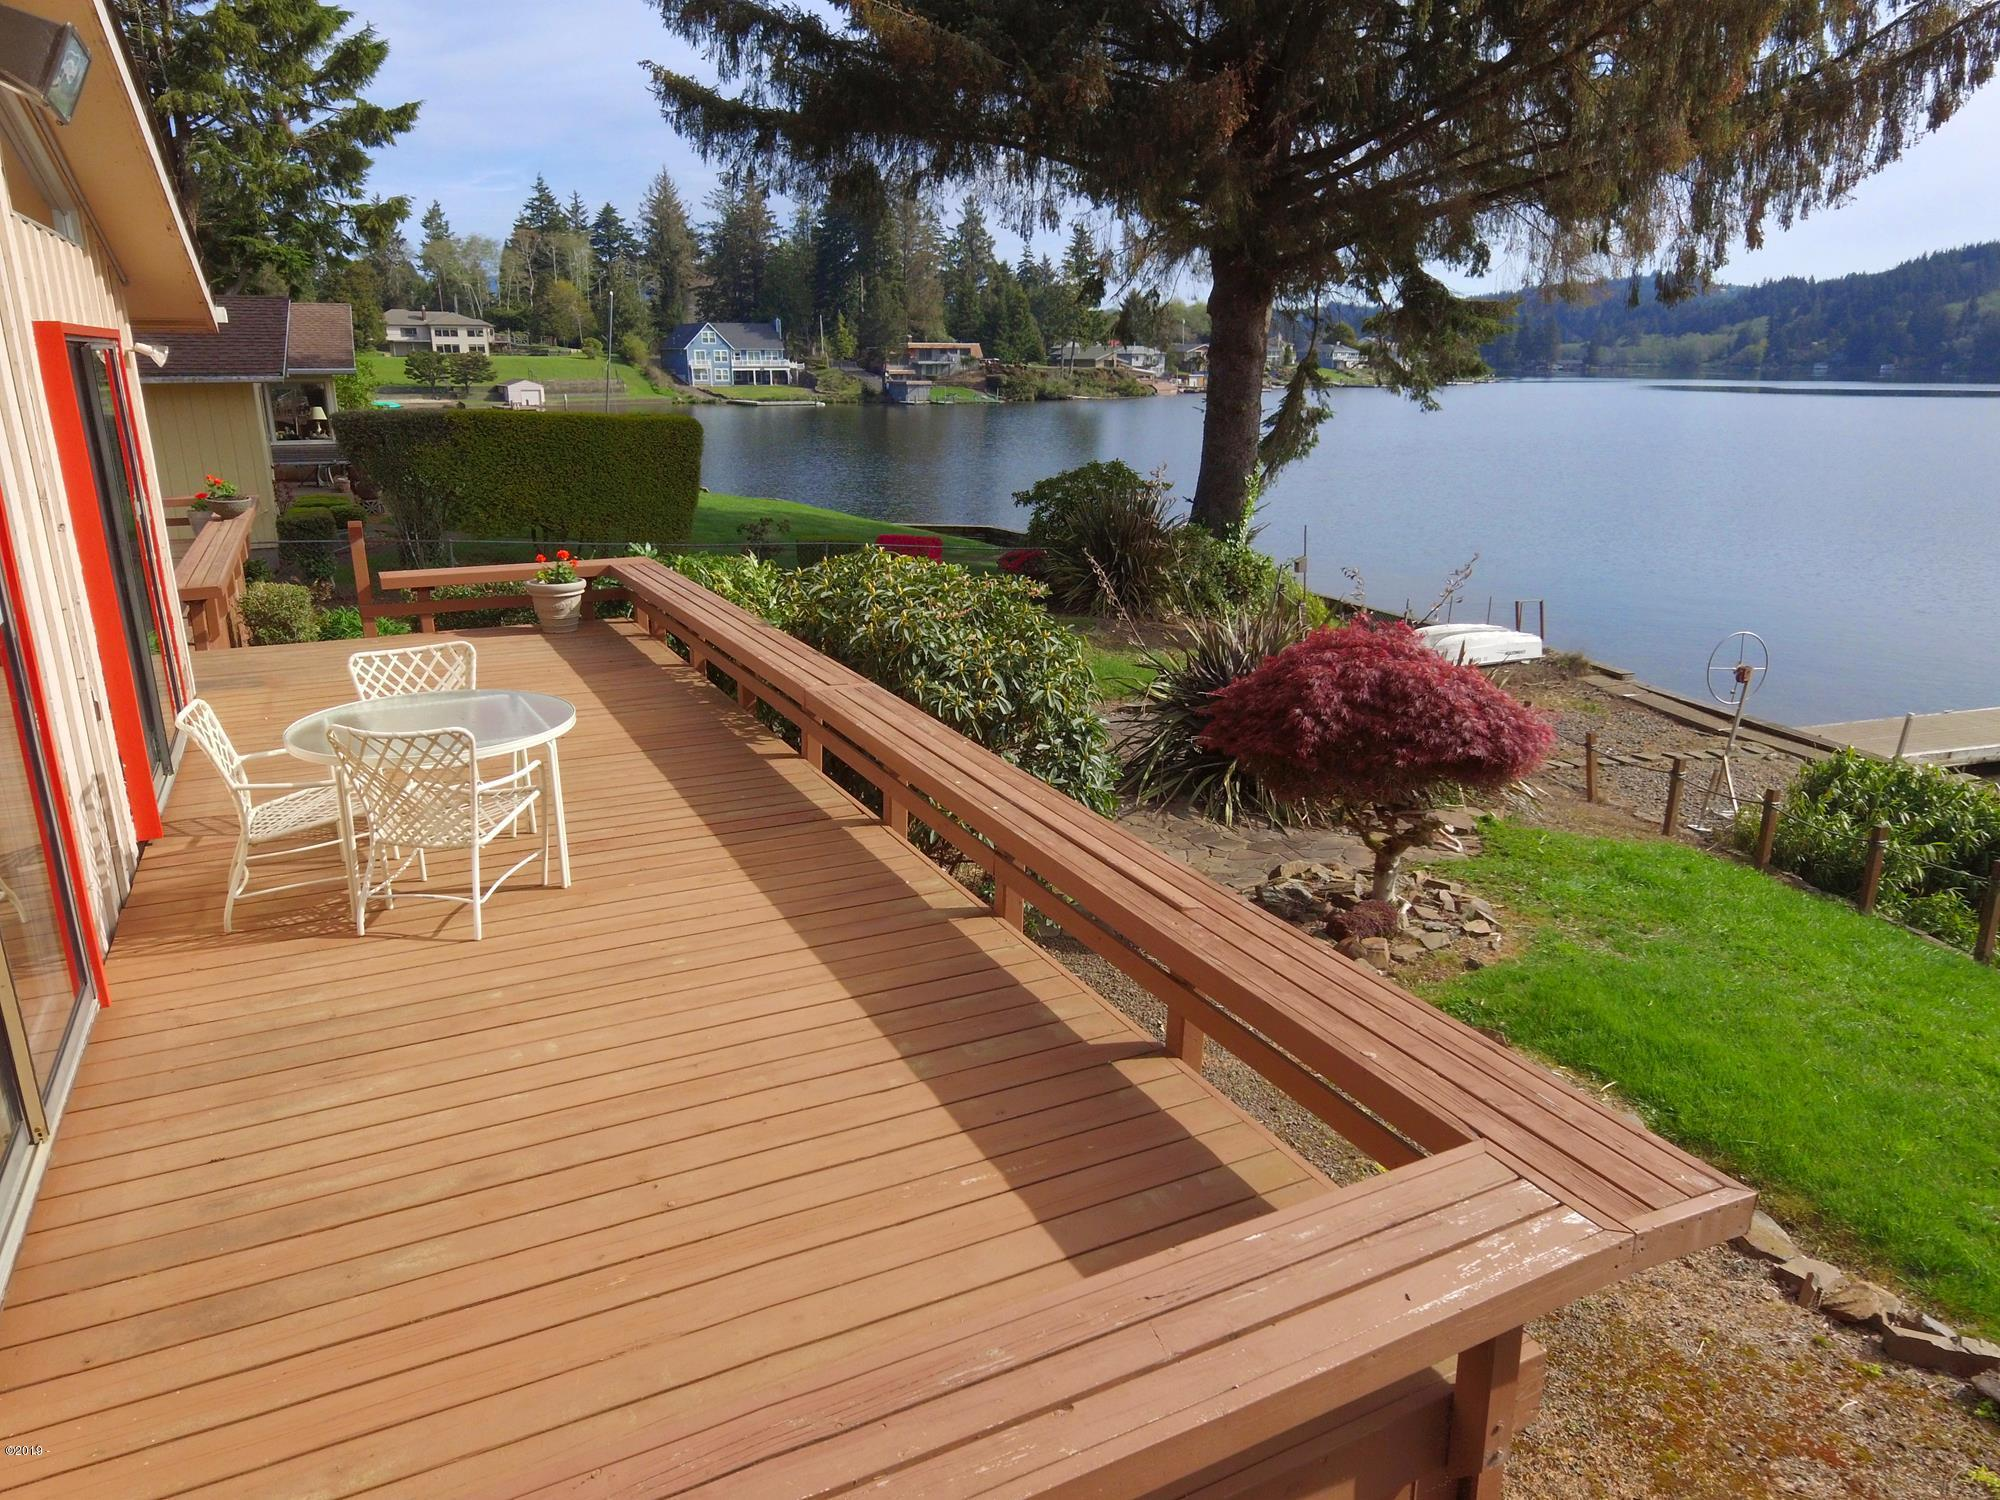 2156 NE Lake Dr, Lincoln City, OR 97367 - 2156 NE Lake Dr